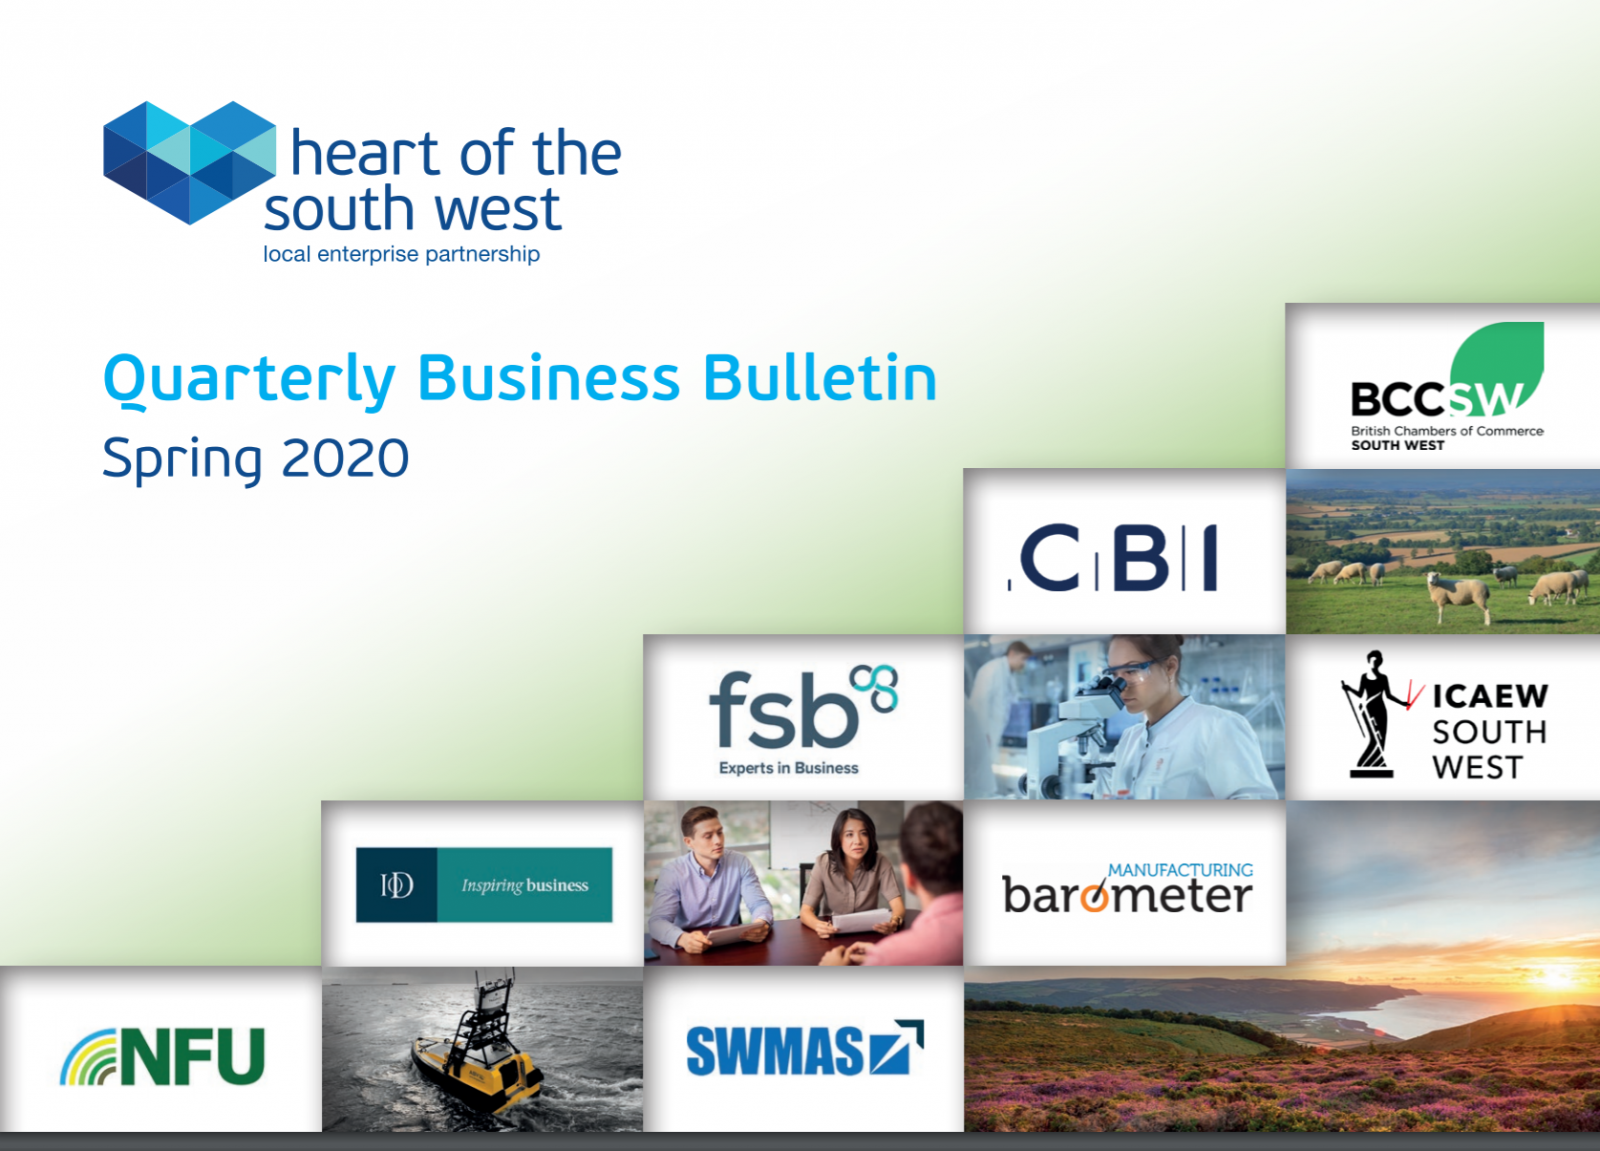 Heart of the south west LEP - COVID-19 Business Resilience Newsletter 5 June 2020